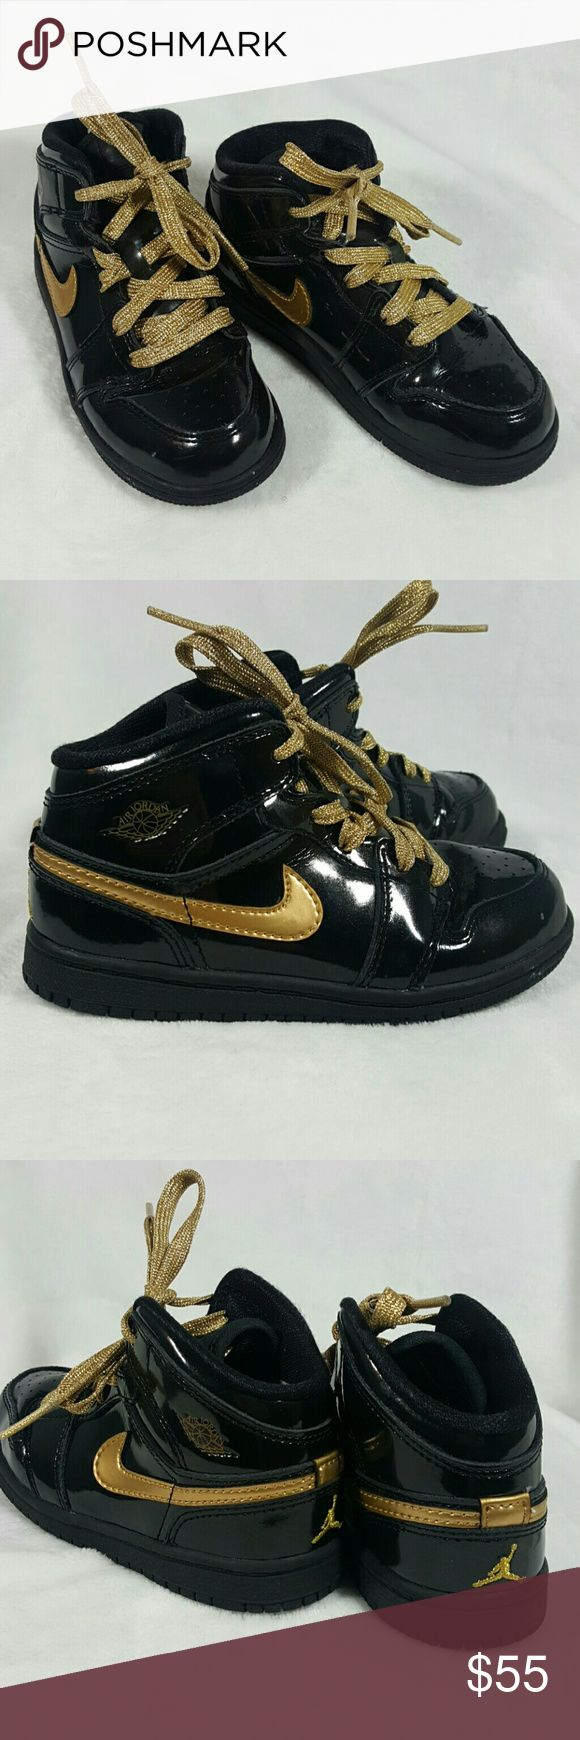 Black and Gold Patent Leather Air Jordan Shoes So cute!!!  Size 10C In great condition  Very clean  Worn only a couple of times.  Authentic Jordan Shoes Sneakers